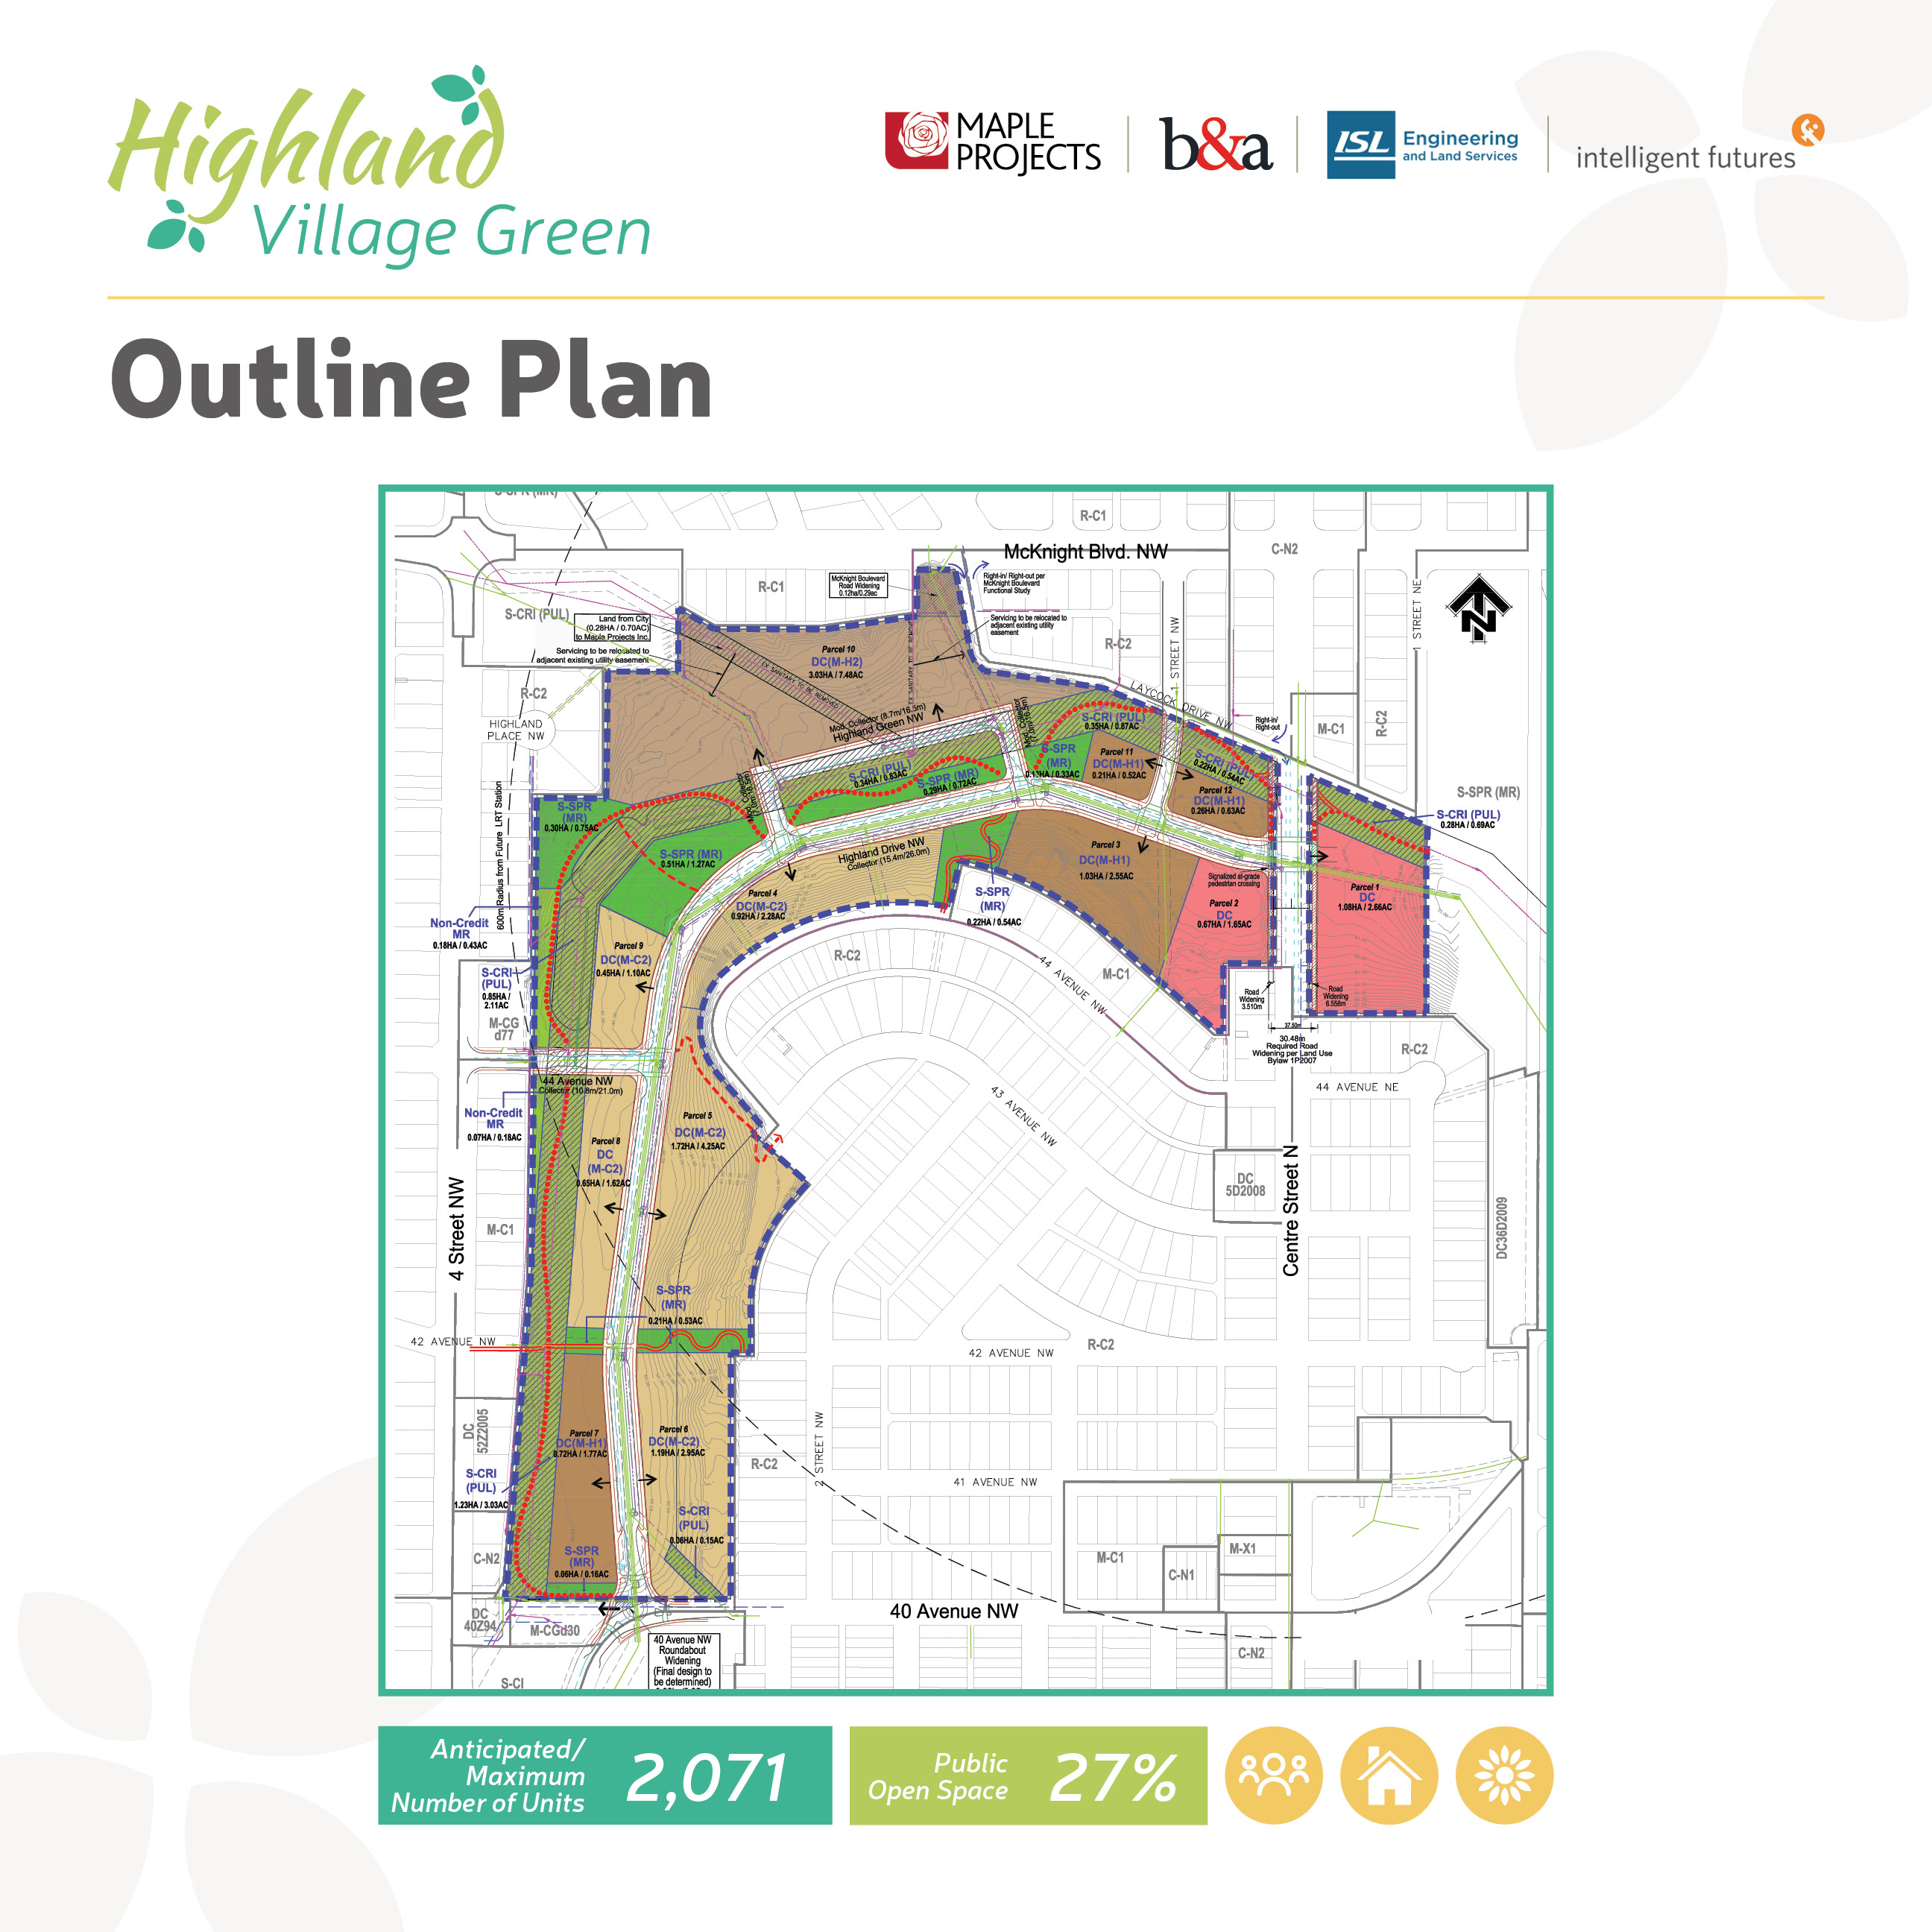 1564 - Highland Village Green - Open House March 2016 - Final Boards3